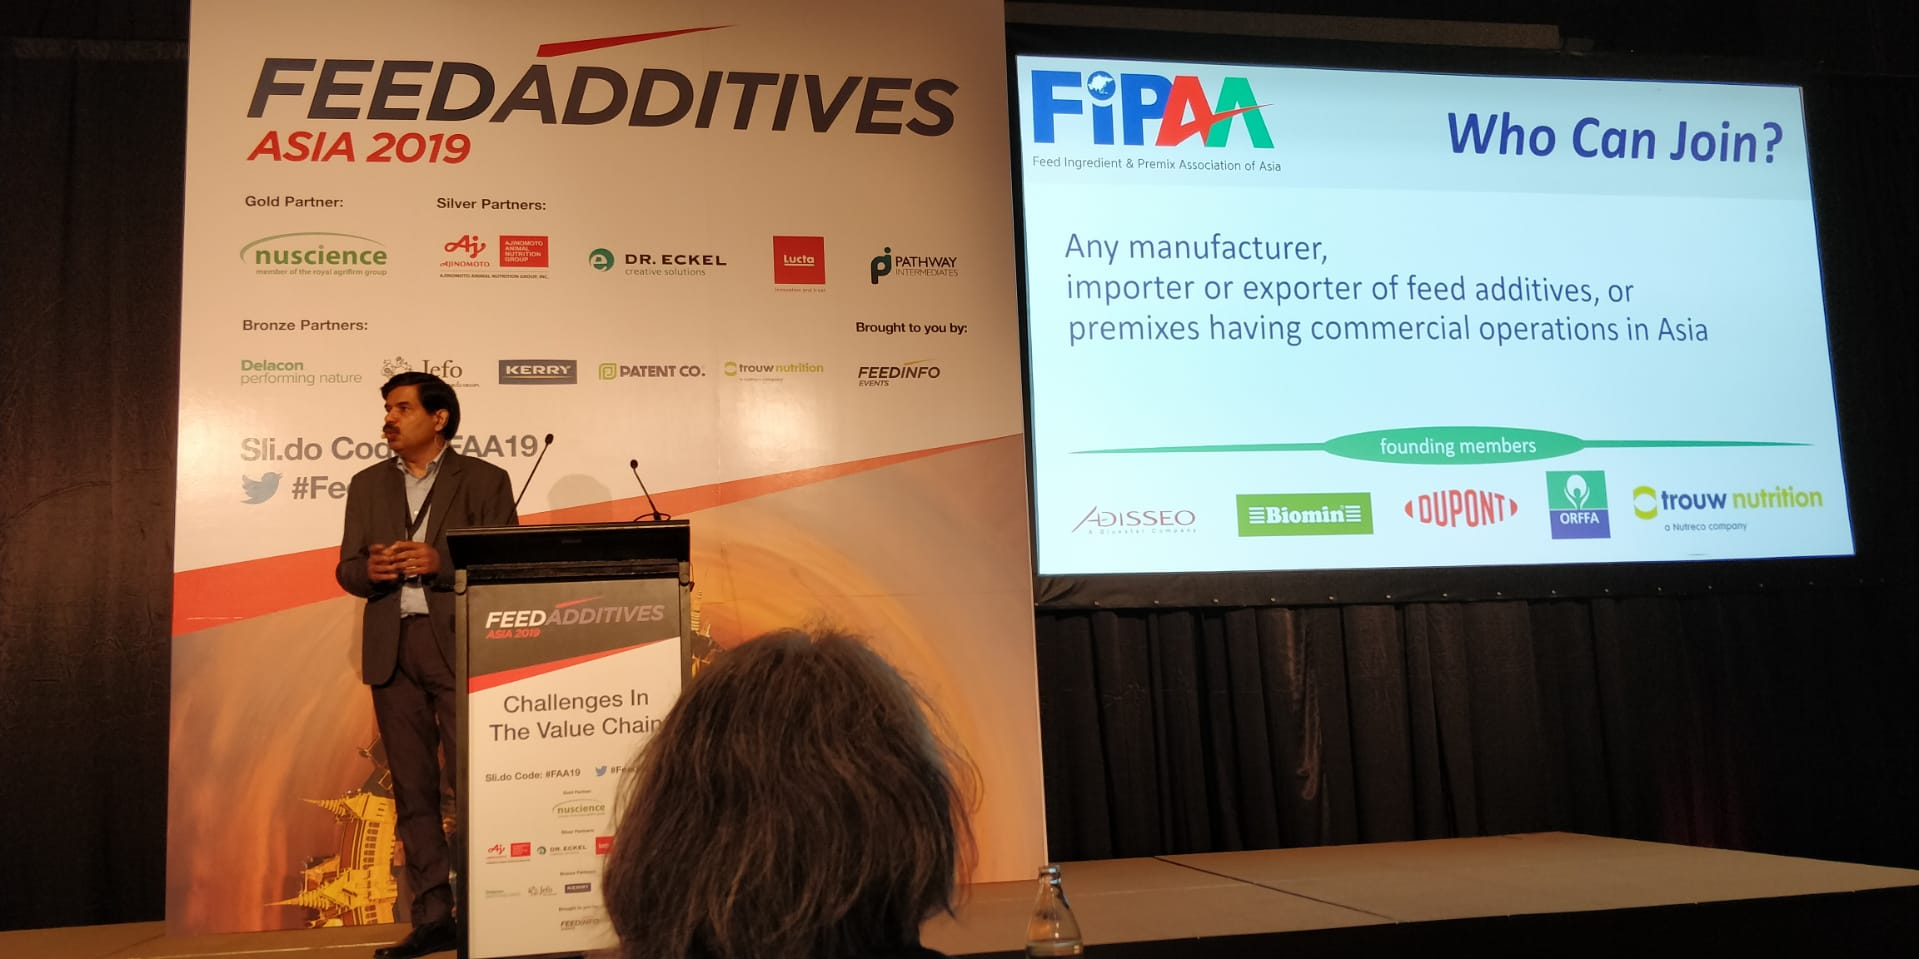 The Feed Ingredient and Premix Association of Asia (FIPAA) has been